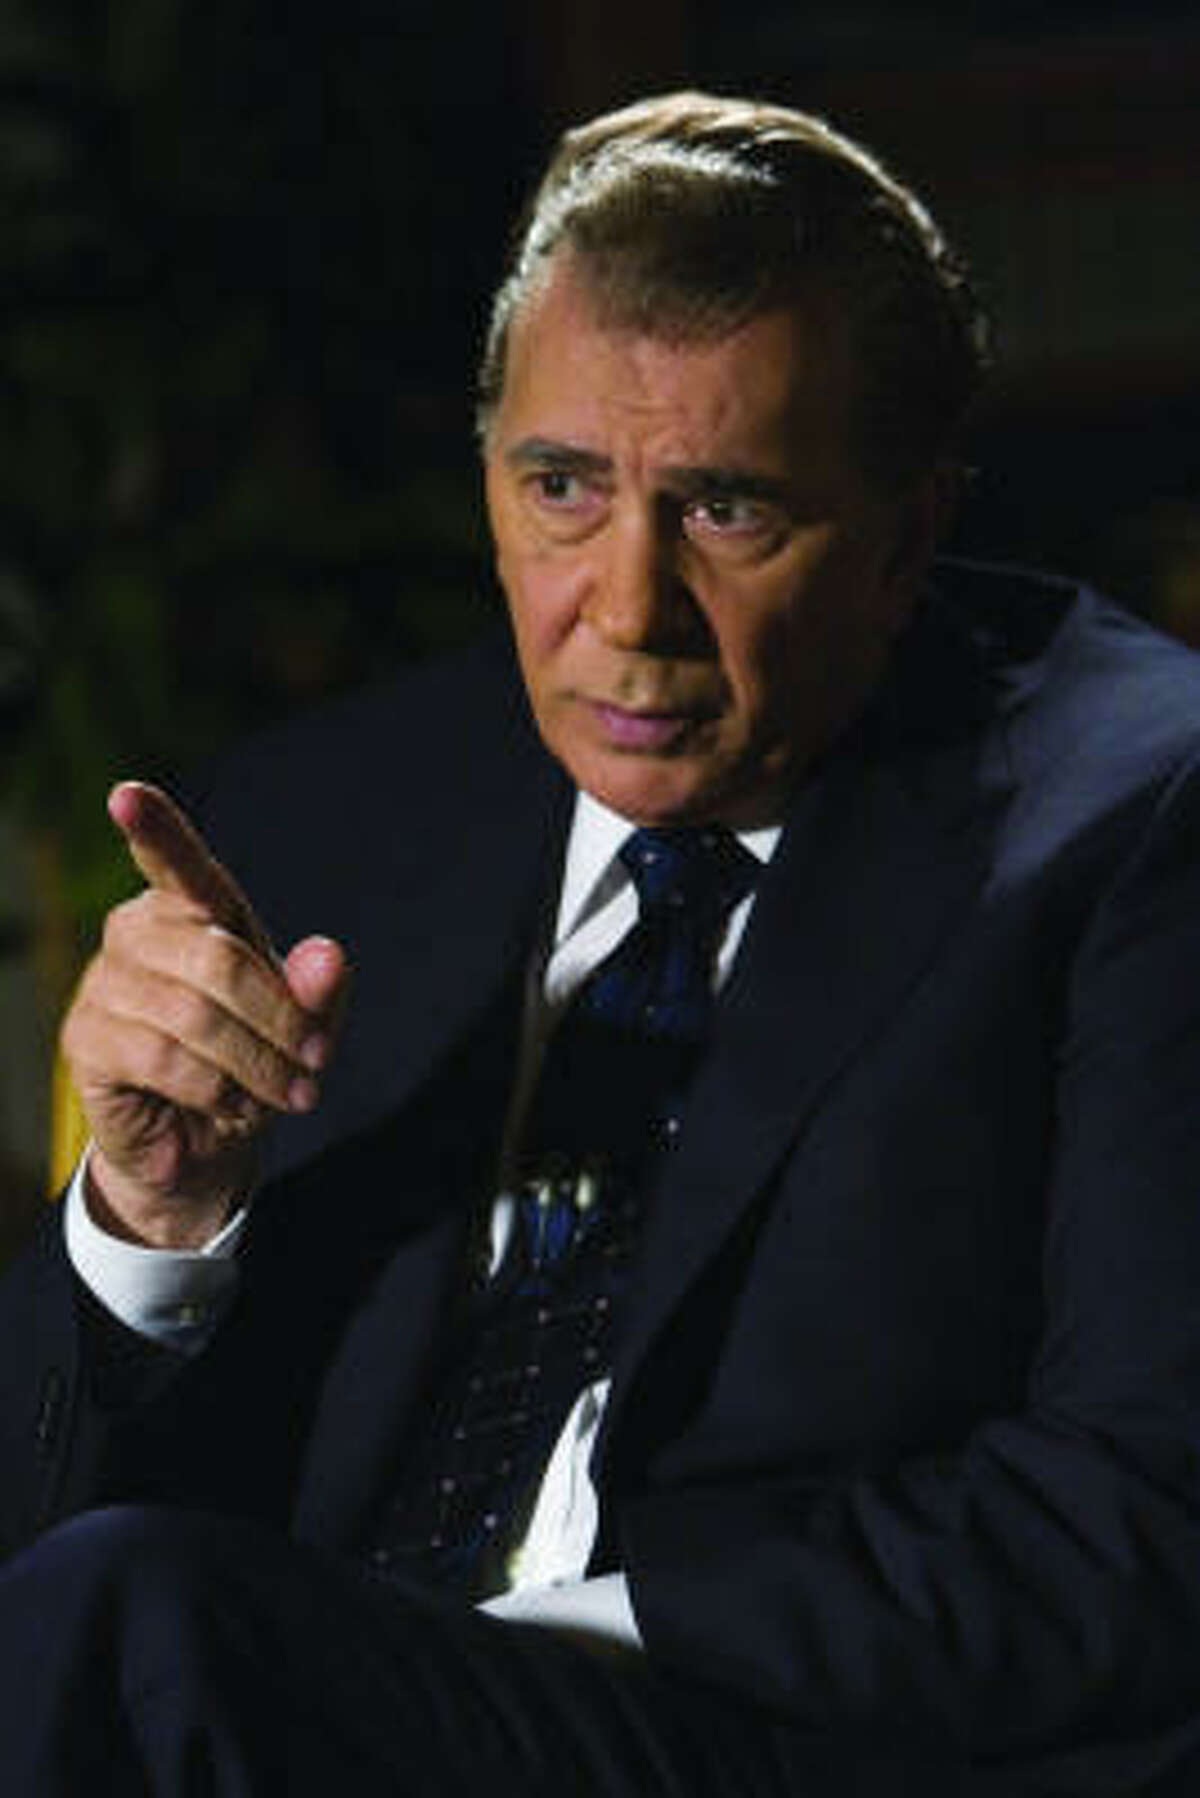 The film was a dramatic retelling of the post-Watergate television interviews between British talk-show host David Frost and former president Richard Nixon.